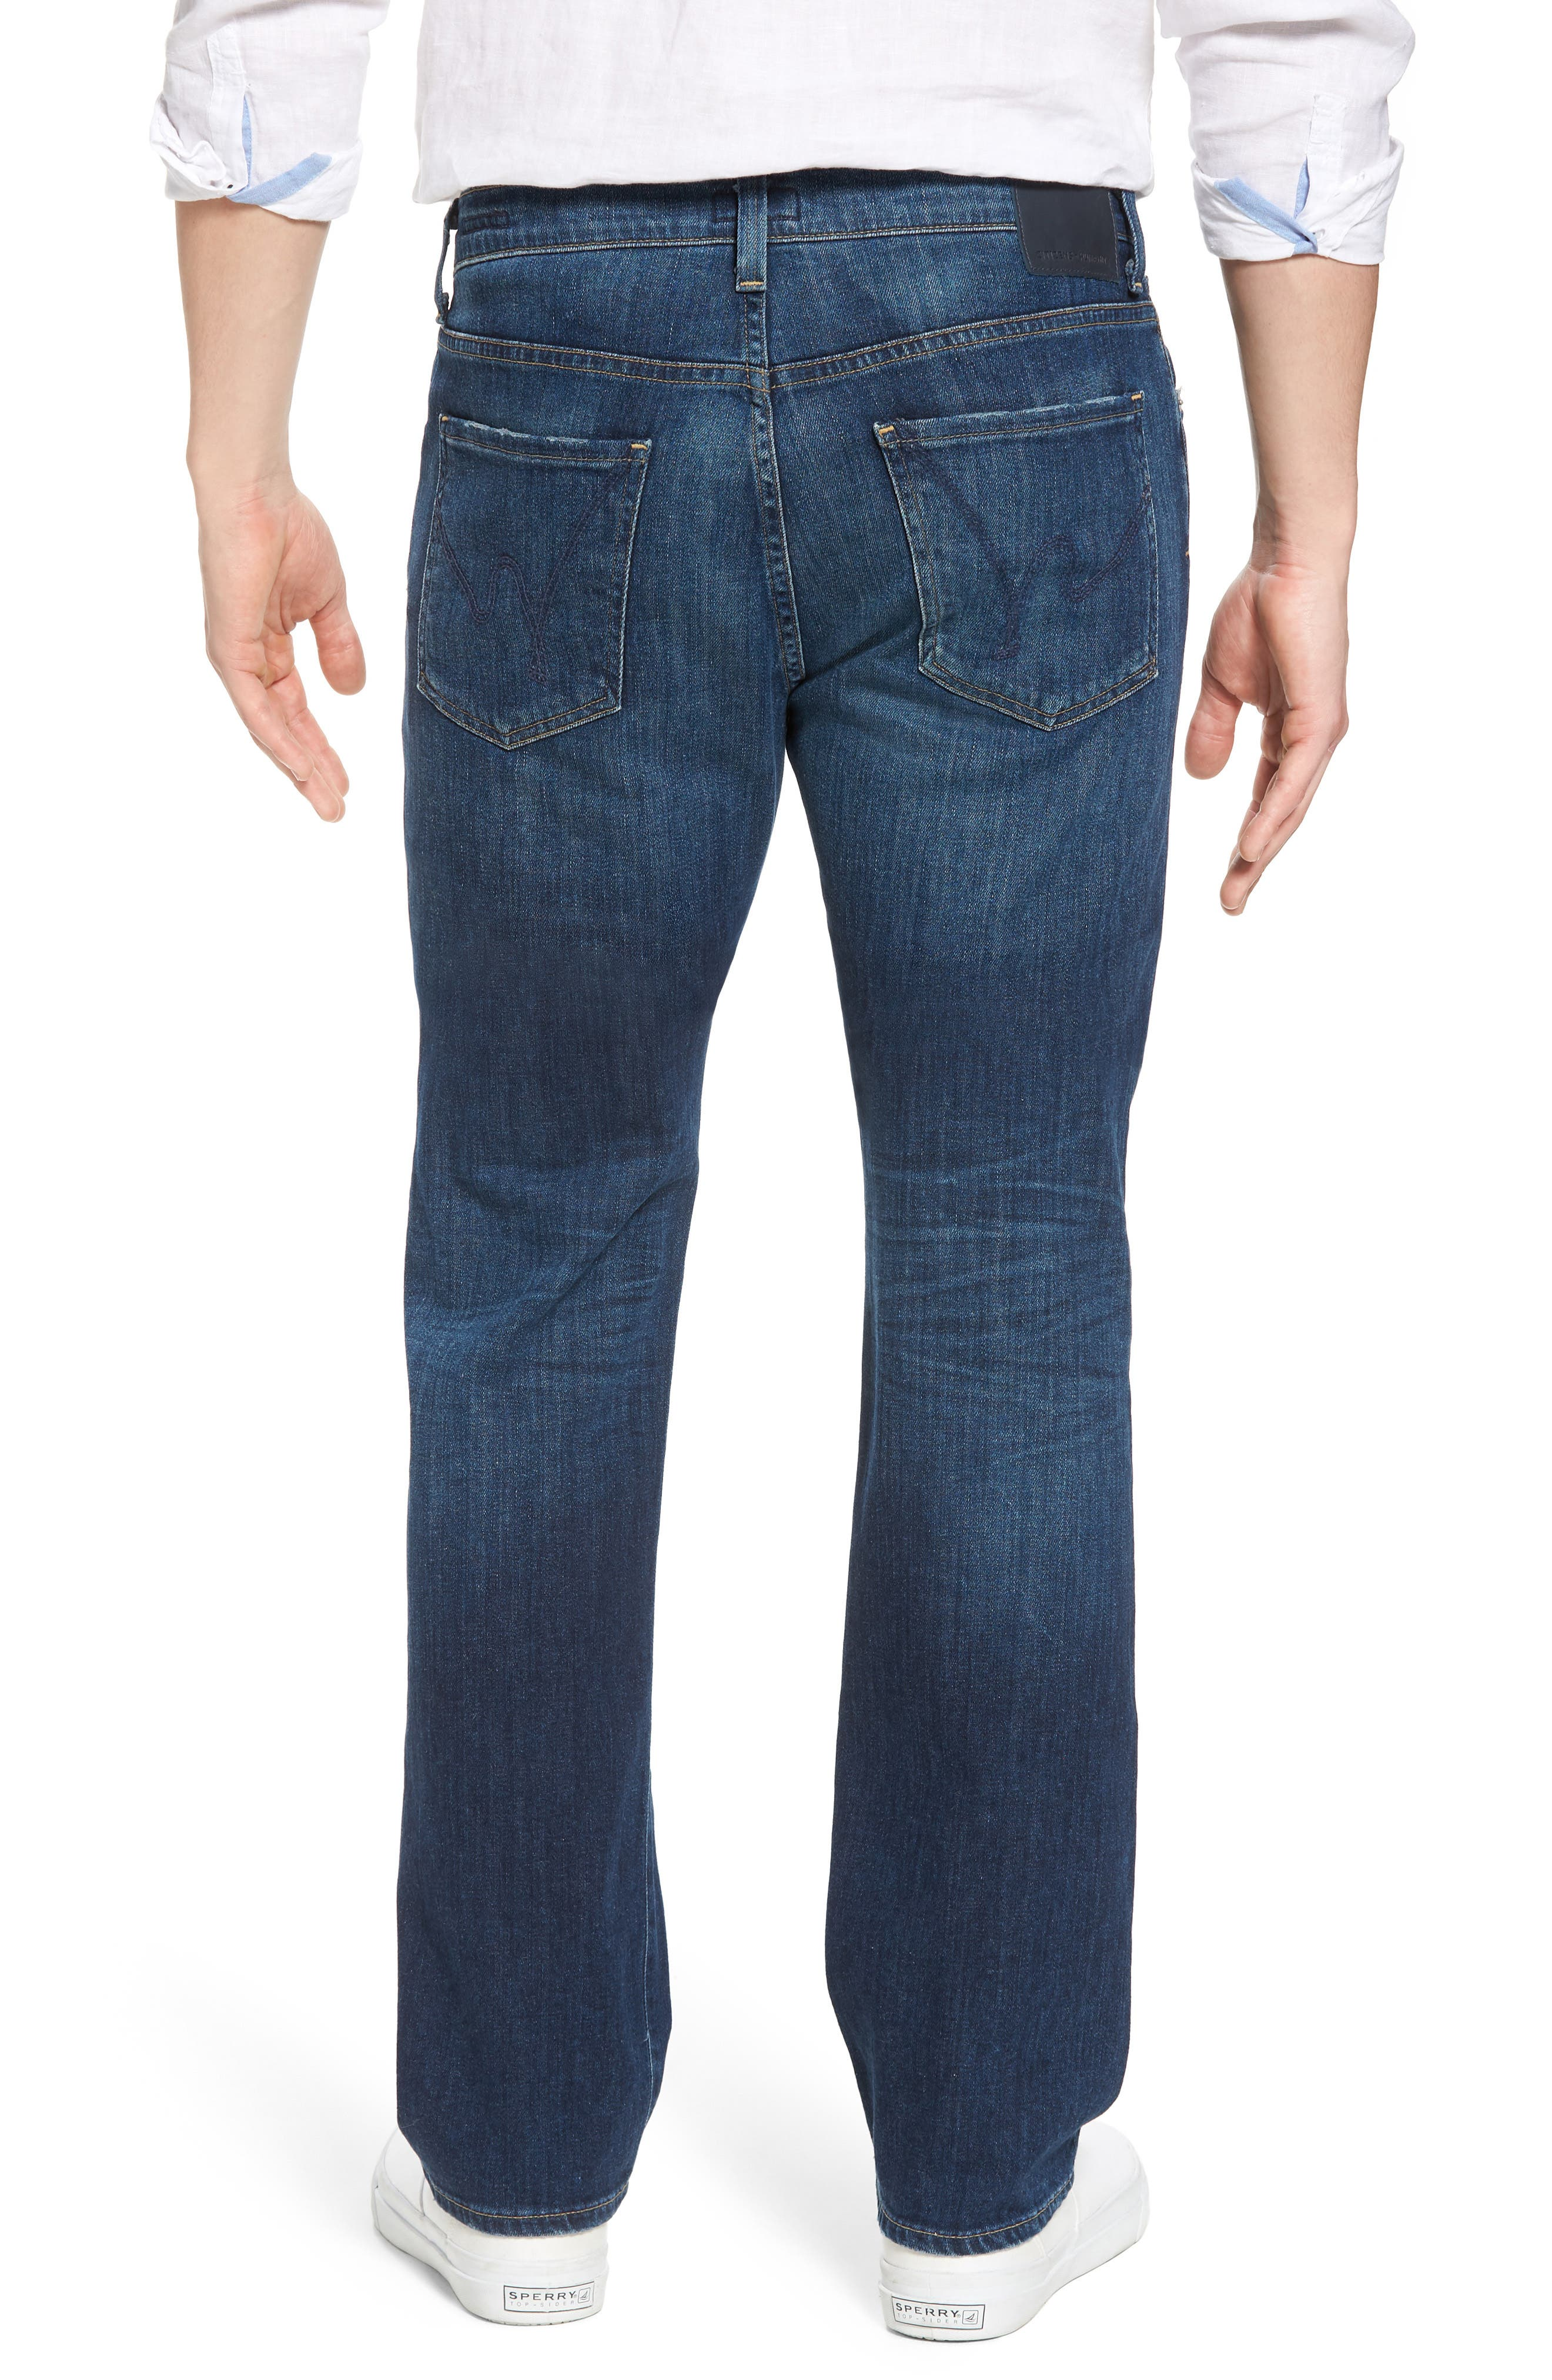 Sid Straight Leg Jeans,                             Alternate thumbnail 2, color,                             Adler